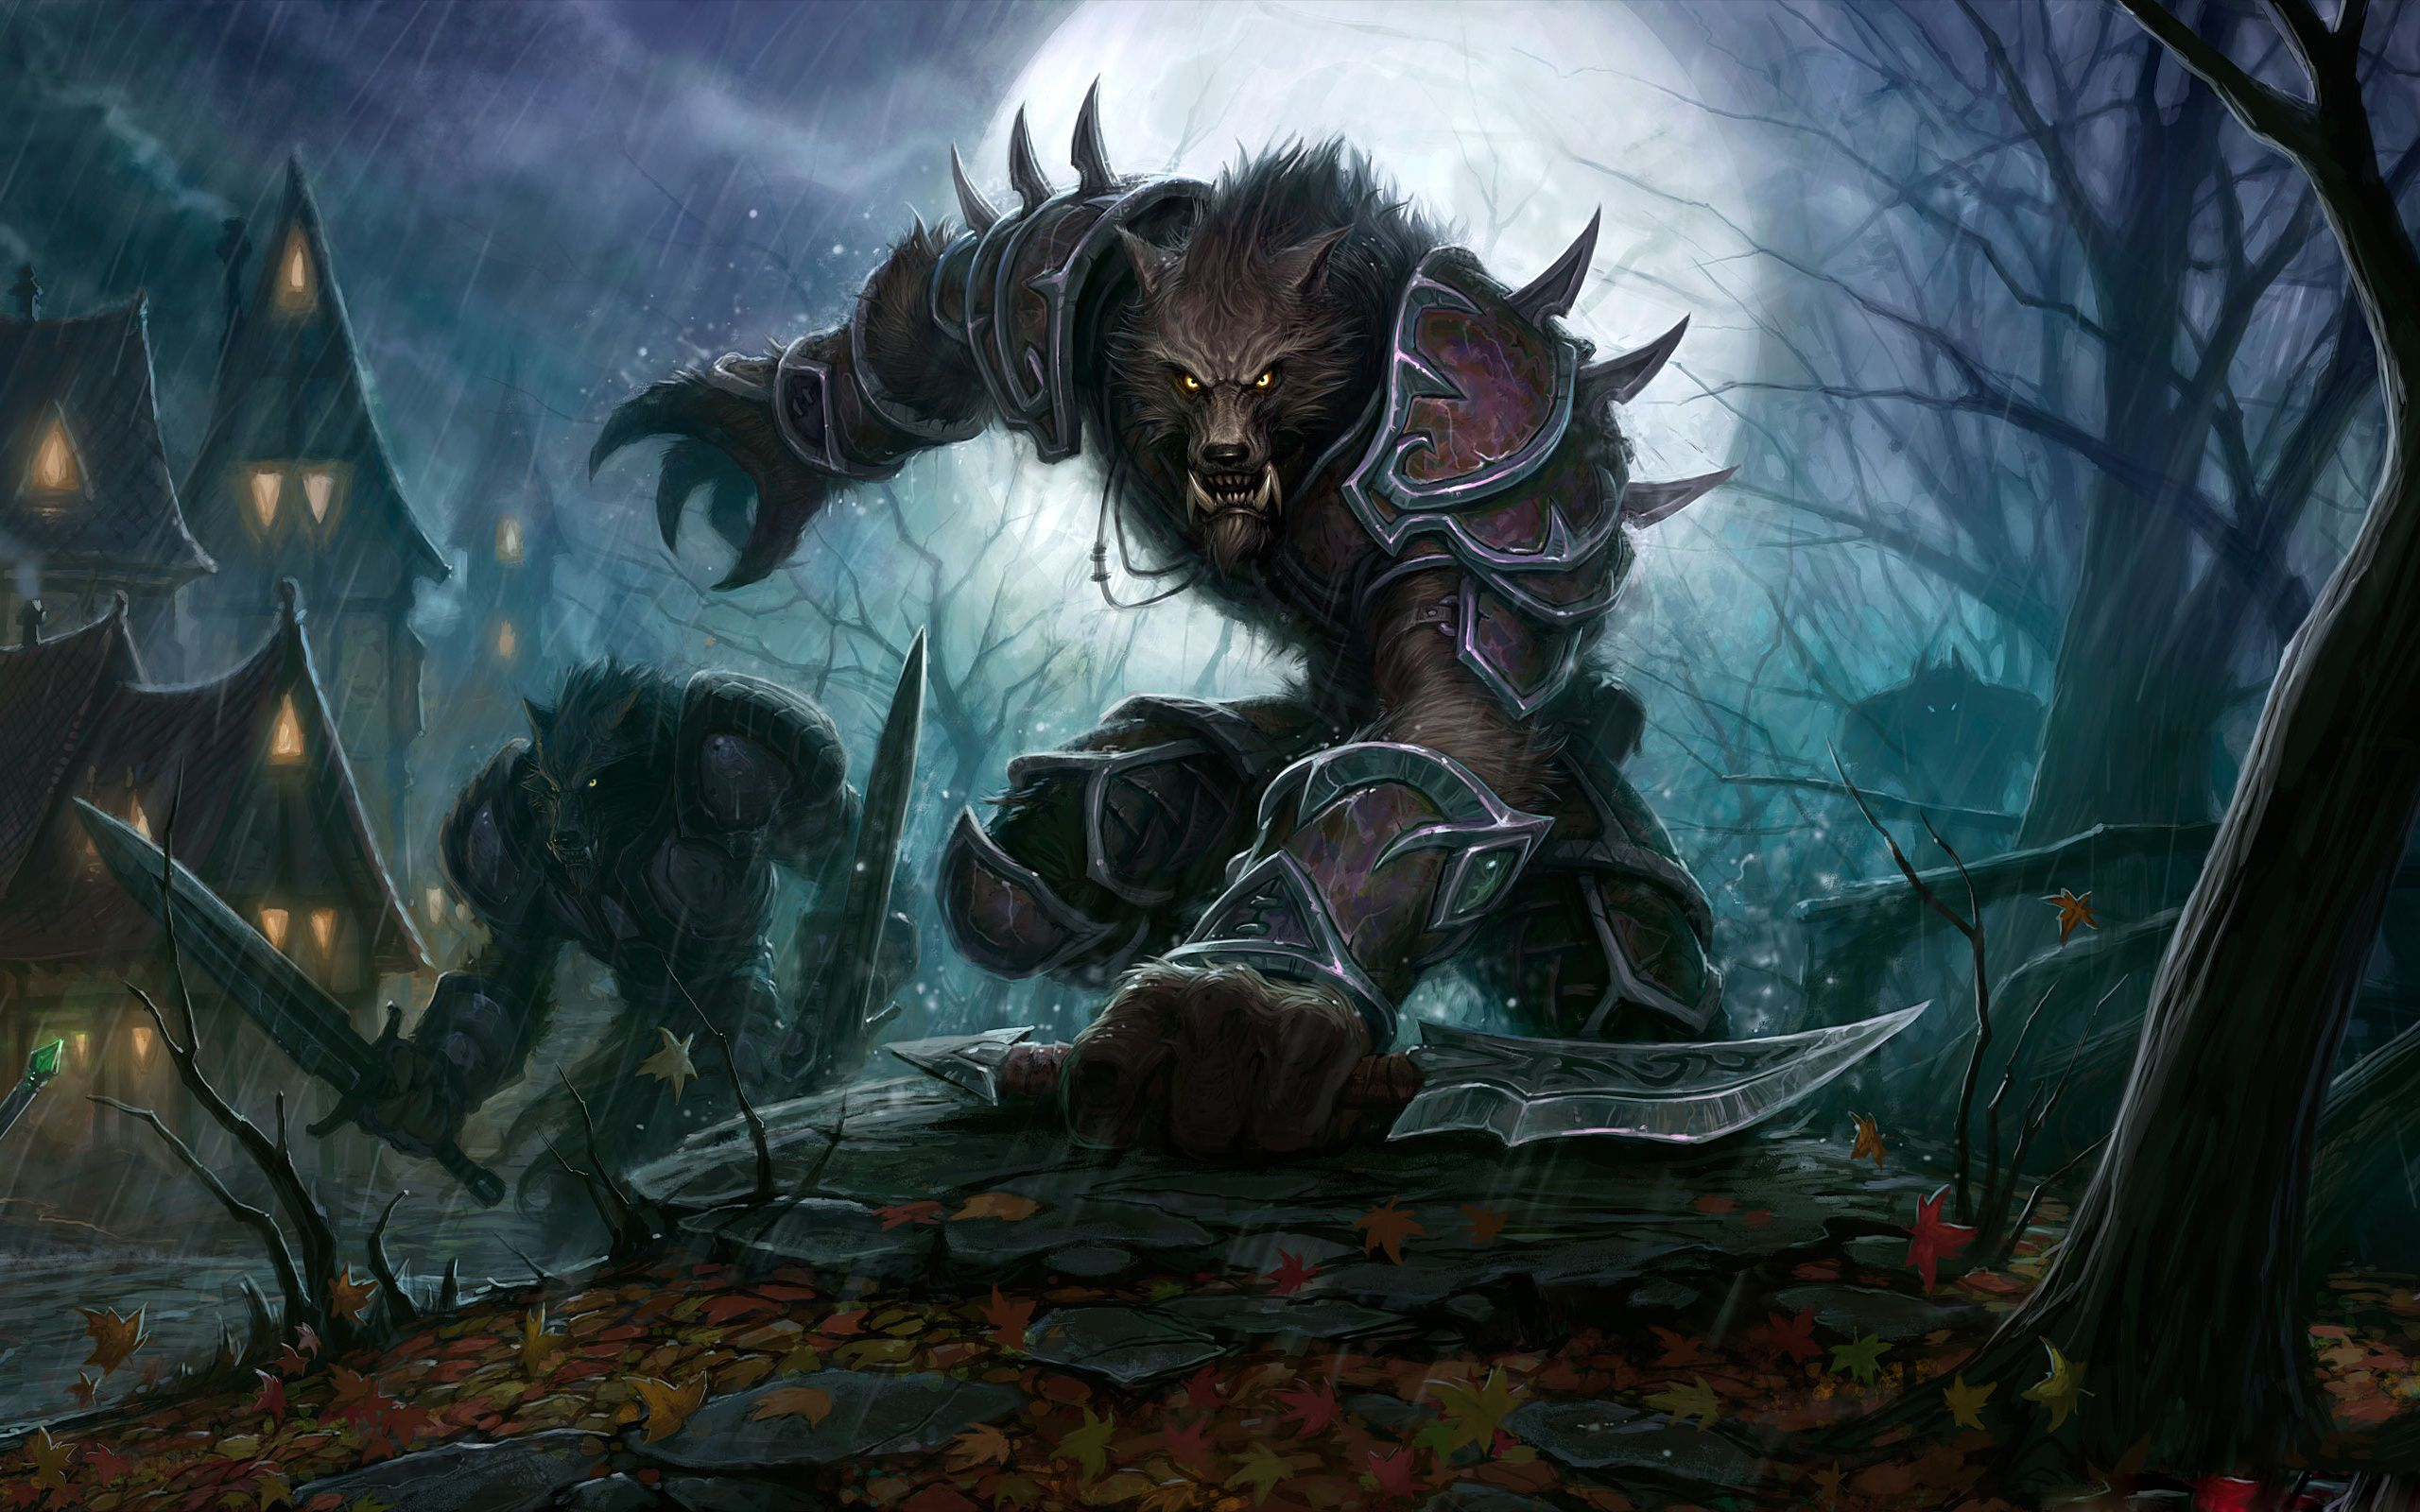 World Of Warcraft Wallpapers High Quality Wallpapers Backgrounds Images Art Phot World Of Warcraft Cataclysm World Of Warcraft Wallpaper World Of Warcraft